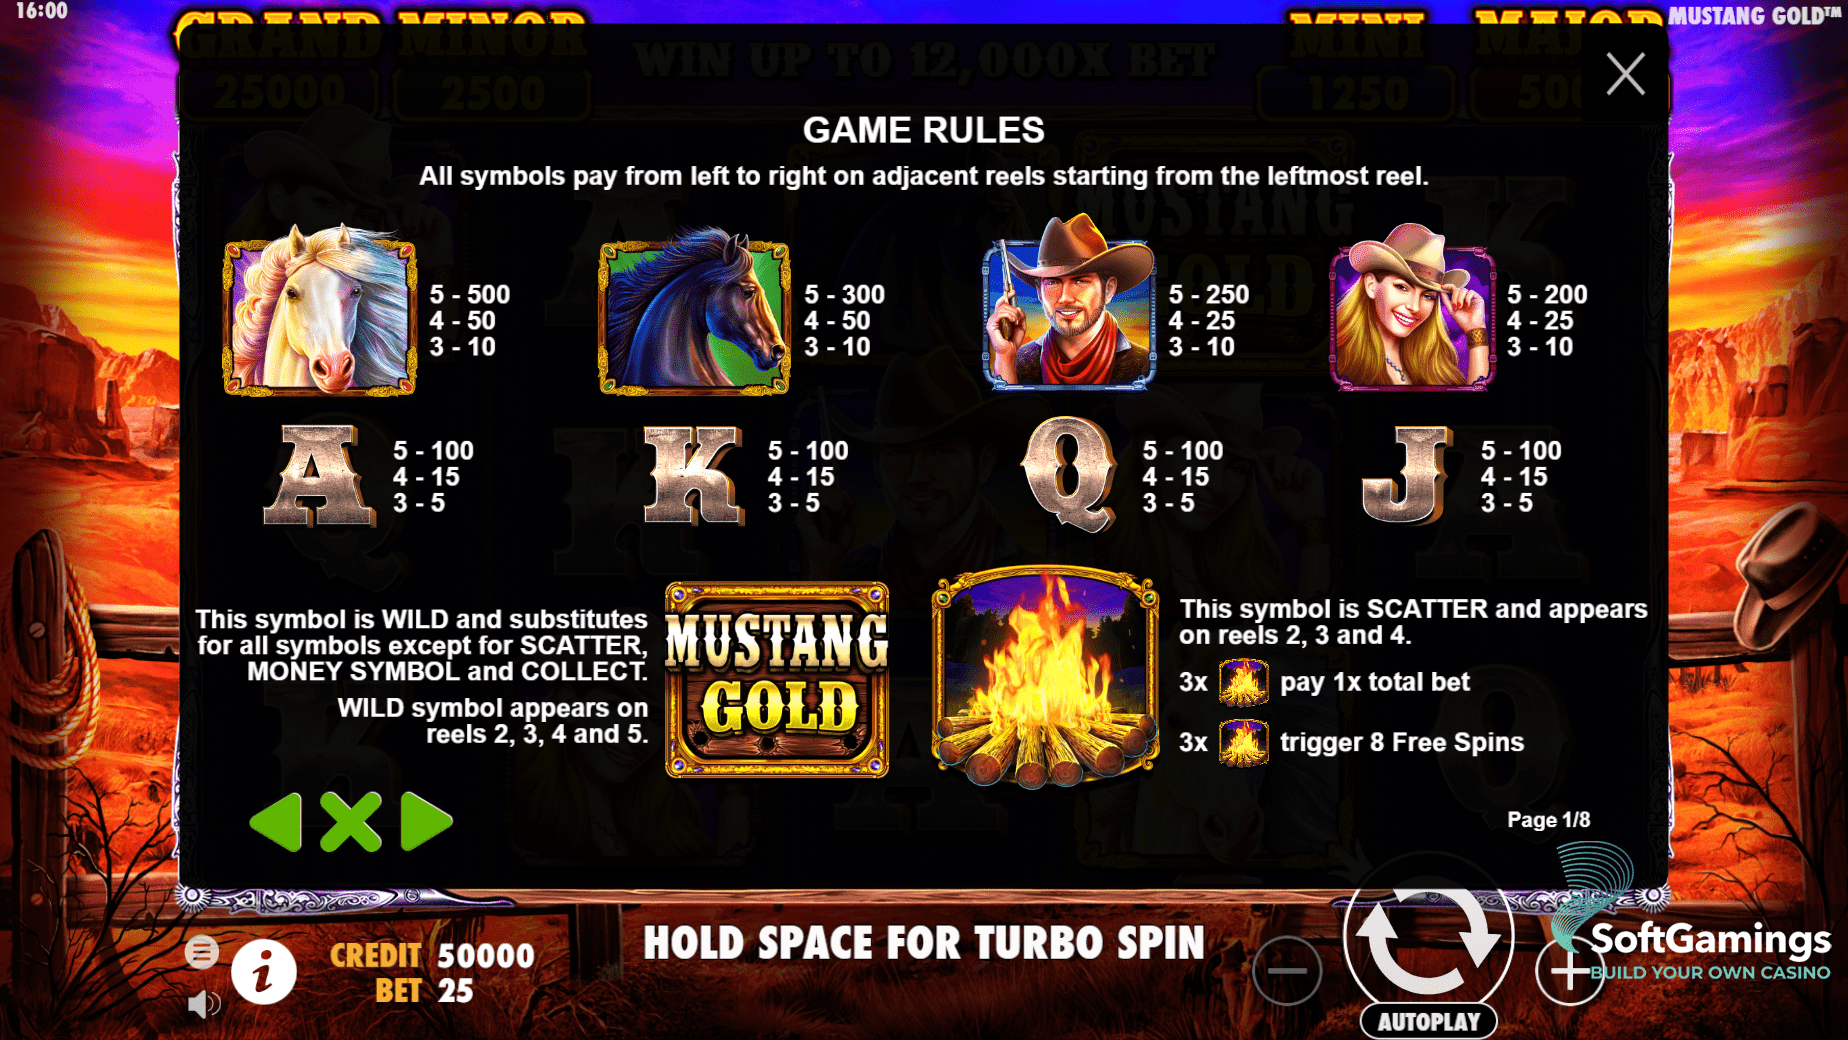 Mustang Gold Slot Game Symbols and Winning Combinations